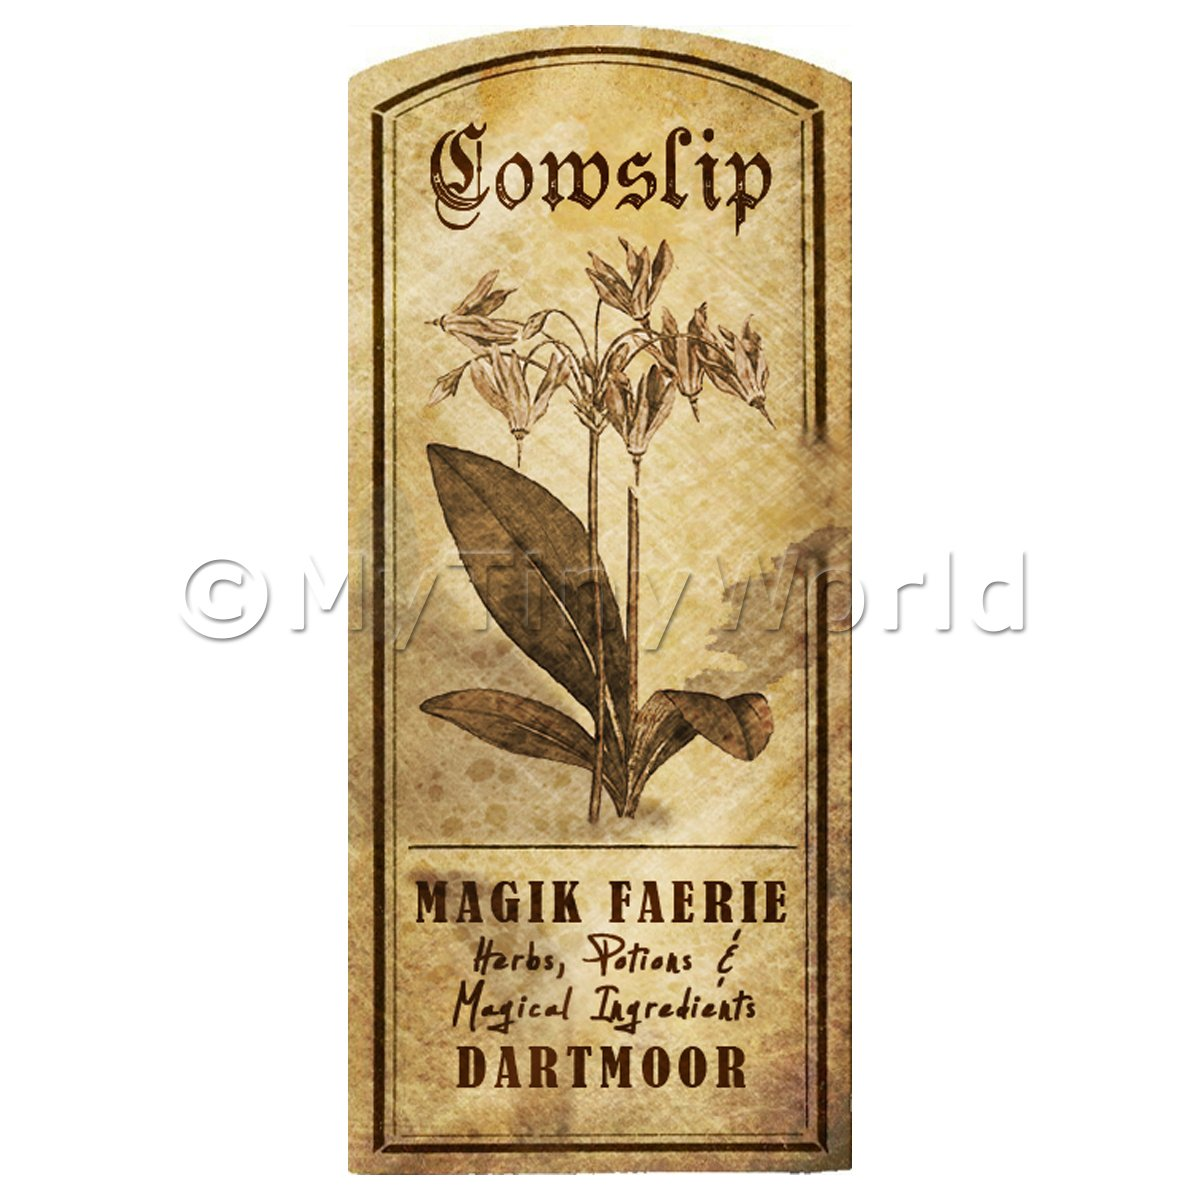 Dolls House Herbalist/Apothecary Cowslip Herb Short Sepia Label